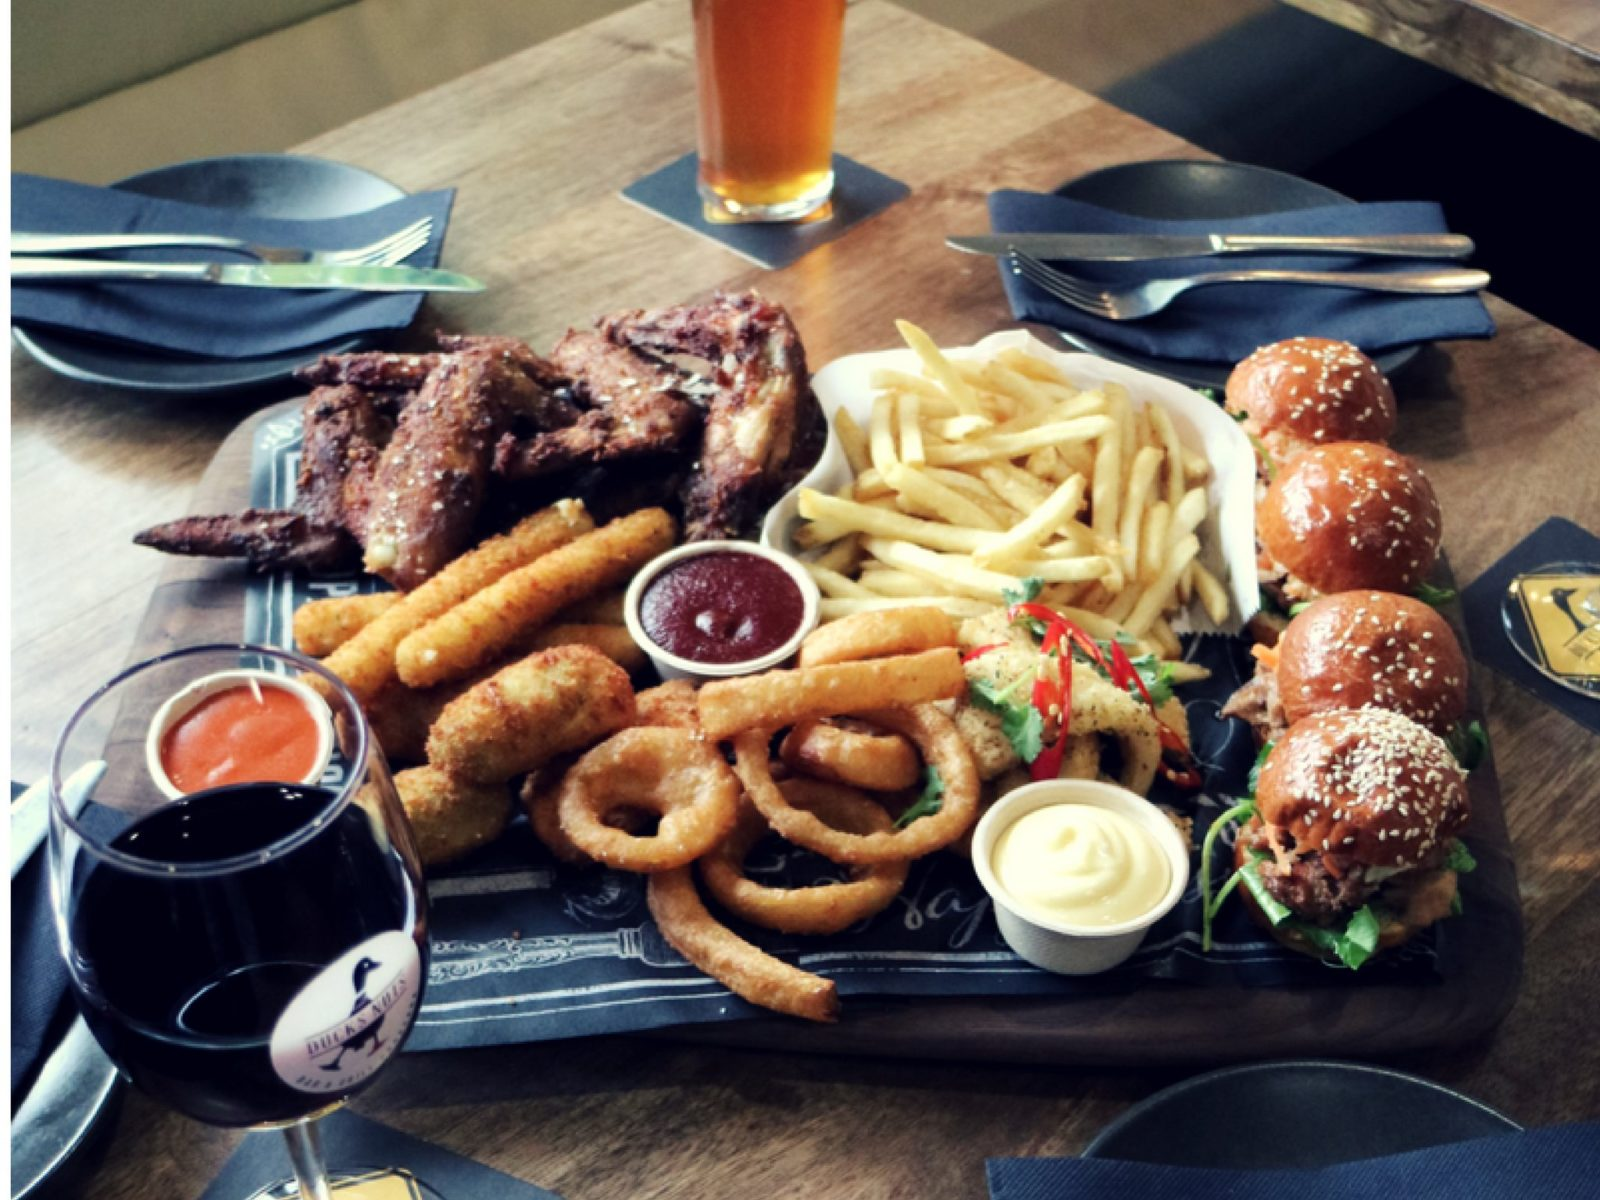 Ducks Platter with burgers, fries, chicken wings, and assorted fried foods